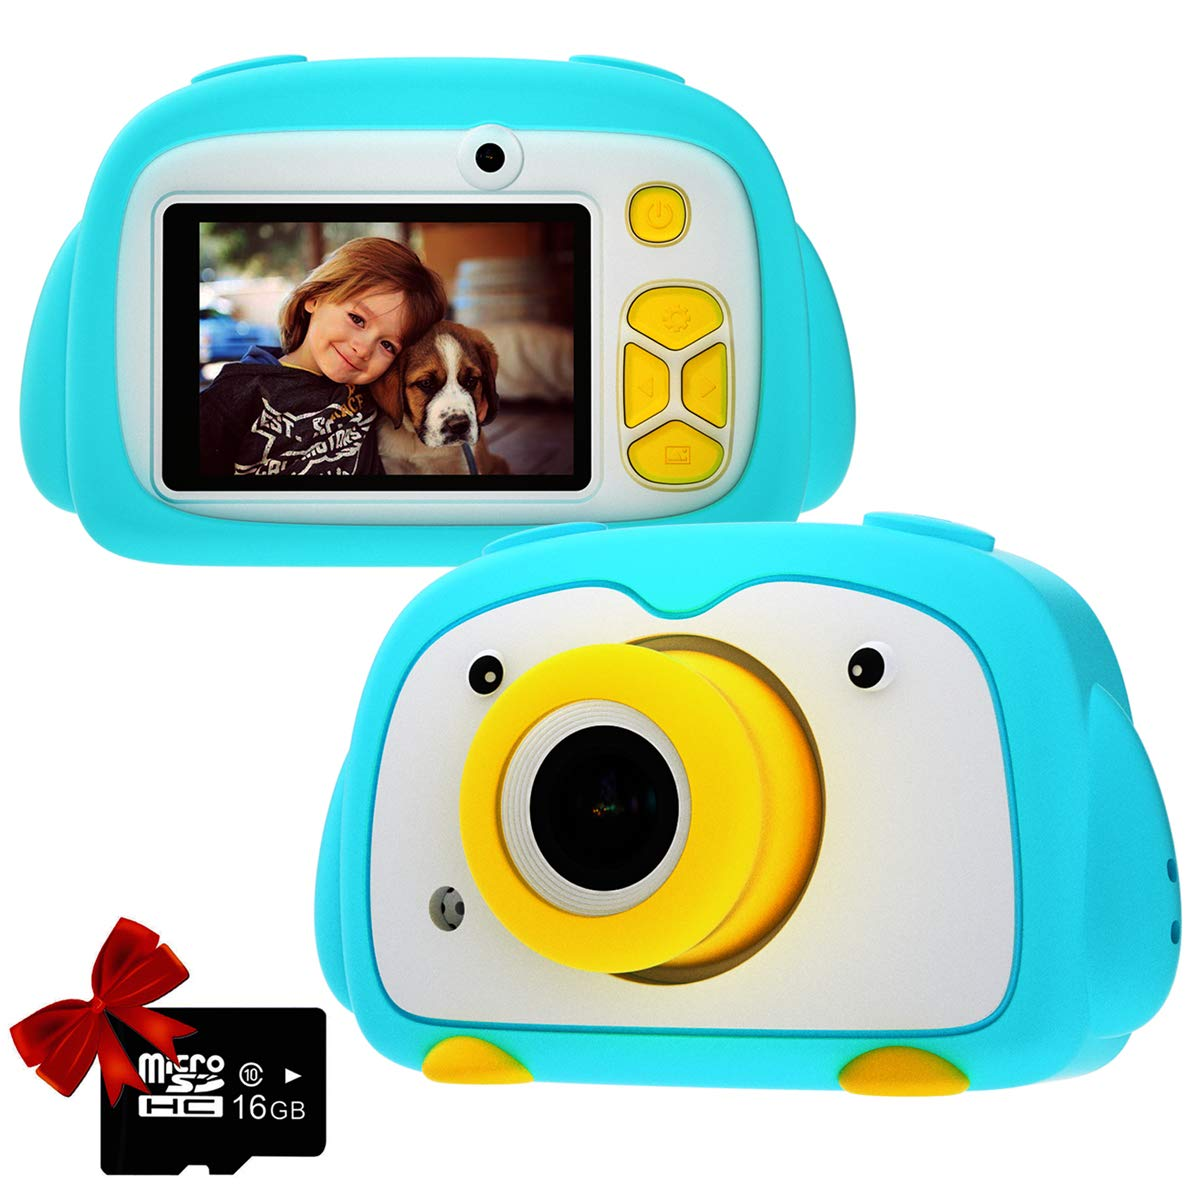 Kids Camera PANNOVO Digital Cam for Girls Rechargeable Video Recorder Cartoon Shockproof Silicone Case with 16GB SD Card 12MP HD 1080P 2 Inch Screen for 3-12 Year Old Boys Toddler (Blue) by PANNOVO